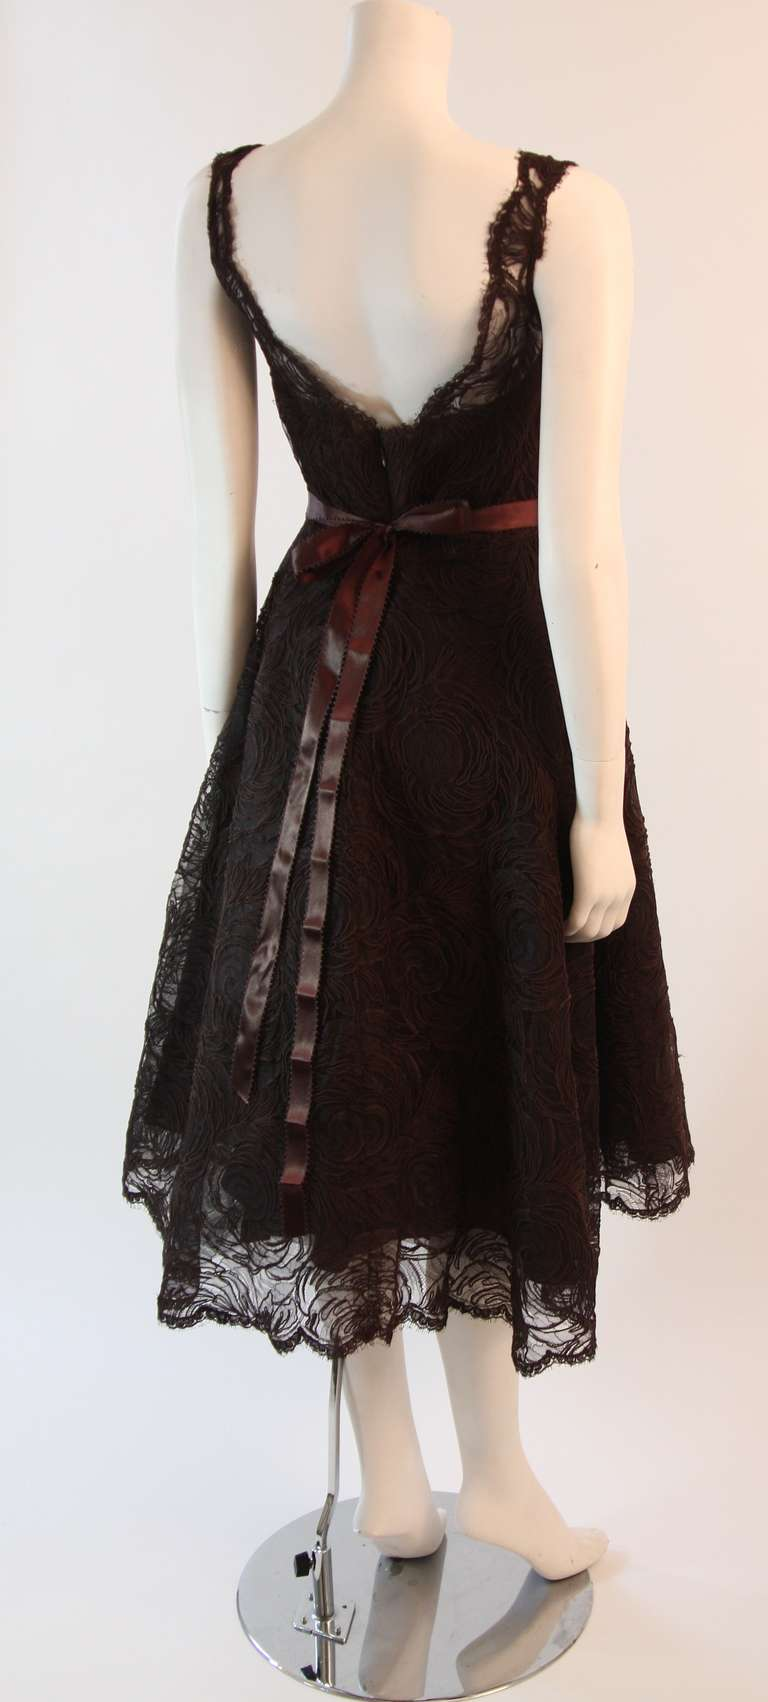 Women's Monique Lhuillier Brown Lace Cocktail Dress Size 8 For Sale